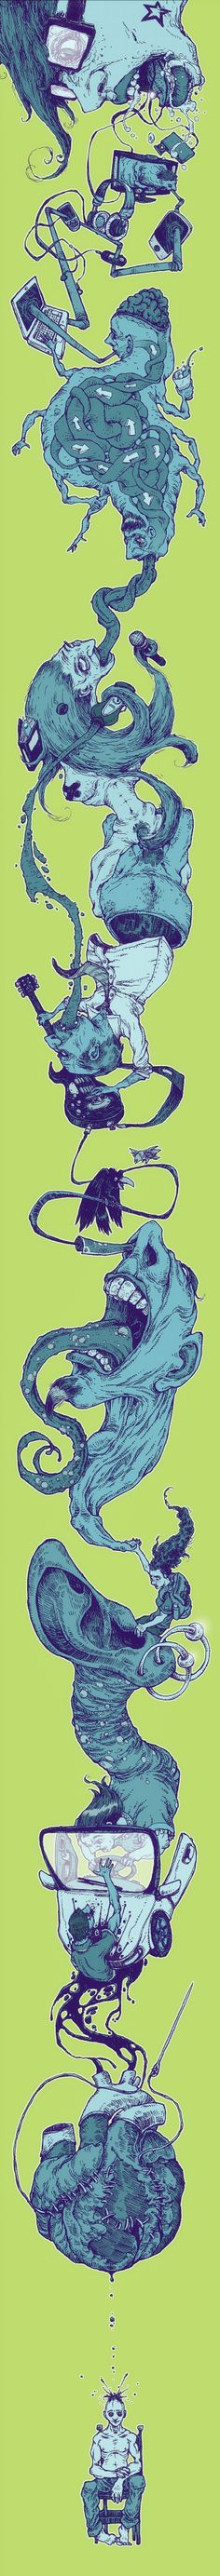 mouth.wide.open by Bernardo Anichini, via Behance